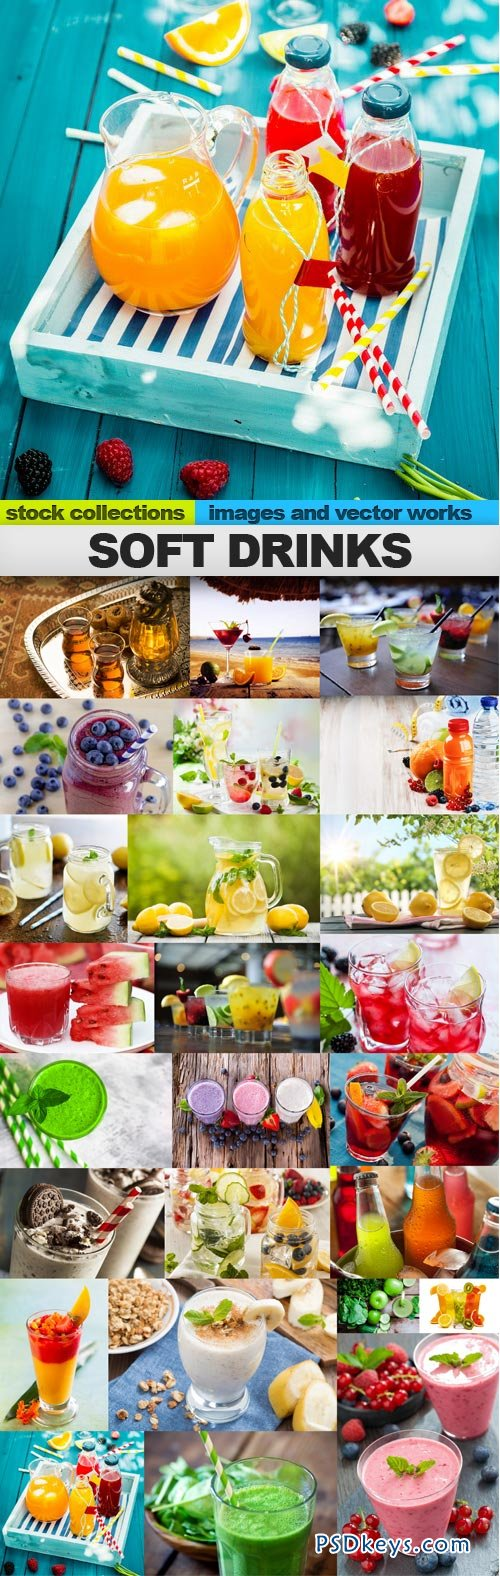 Soft drinks 25xUHQ JPEG